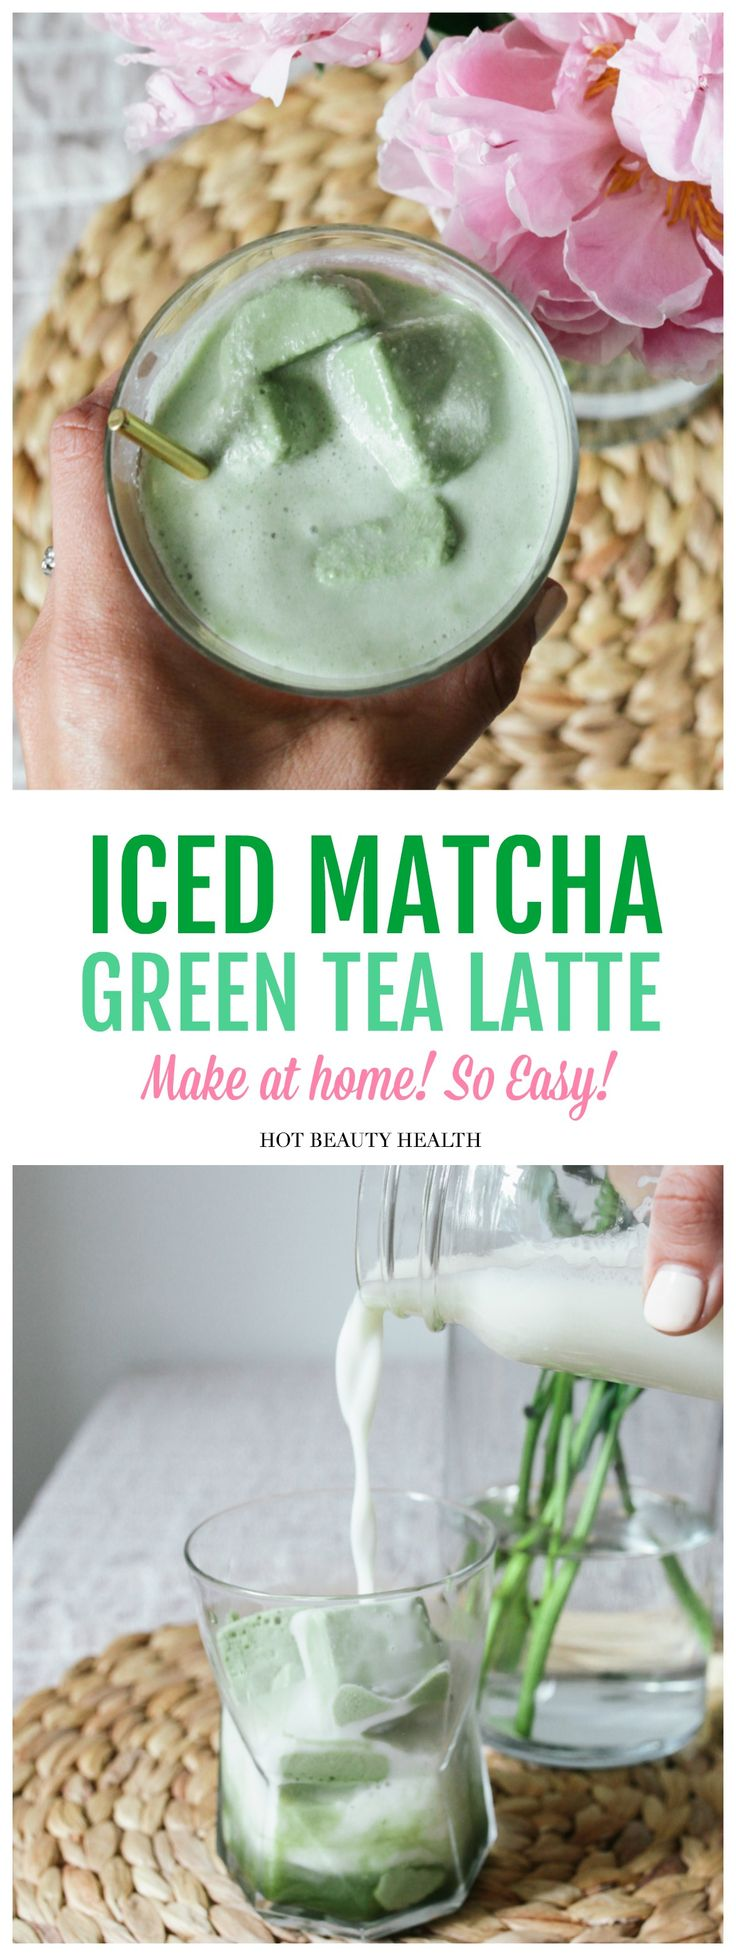 This healthy & creamy Iced Matcha Green Tea Latte recipe is lightly sweetened and with a hint of vanilla. By using an ice cube tray to freeze the matcha mixture (match powder, coconut milk, almond milk, and honey), it's more simple to make and the perfect make-ahead drink. Vegan, dairy-free and a much healthier version than Starbucks. Click pin for recipe! Hot Beauty Health #matchatea #icedmatchatea #healthytea #greentea #matchagreentea #healthydrink